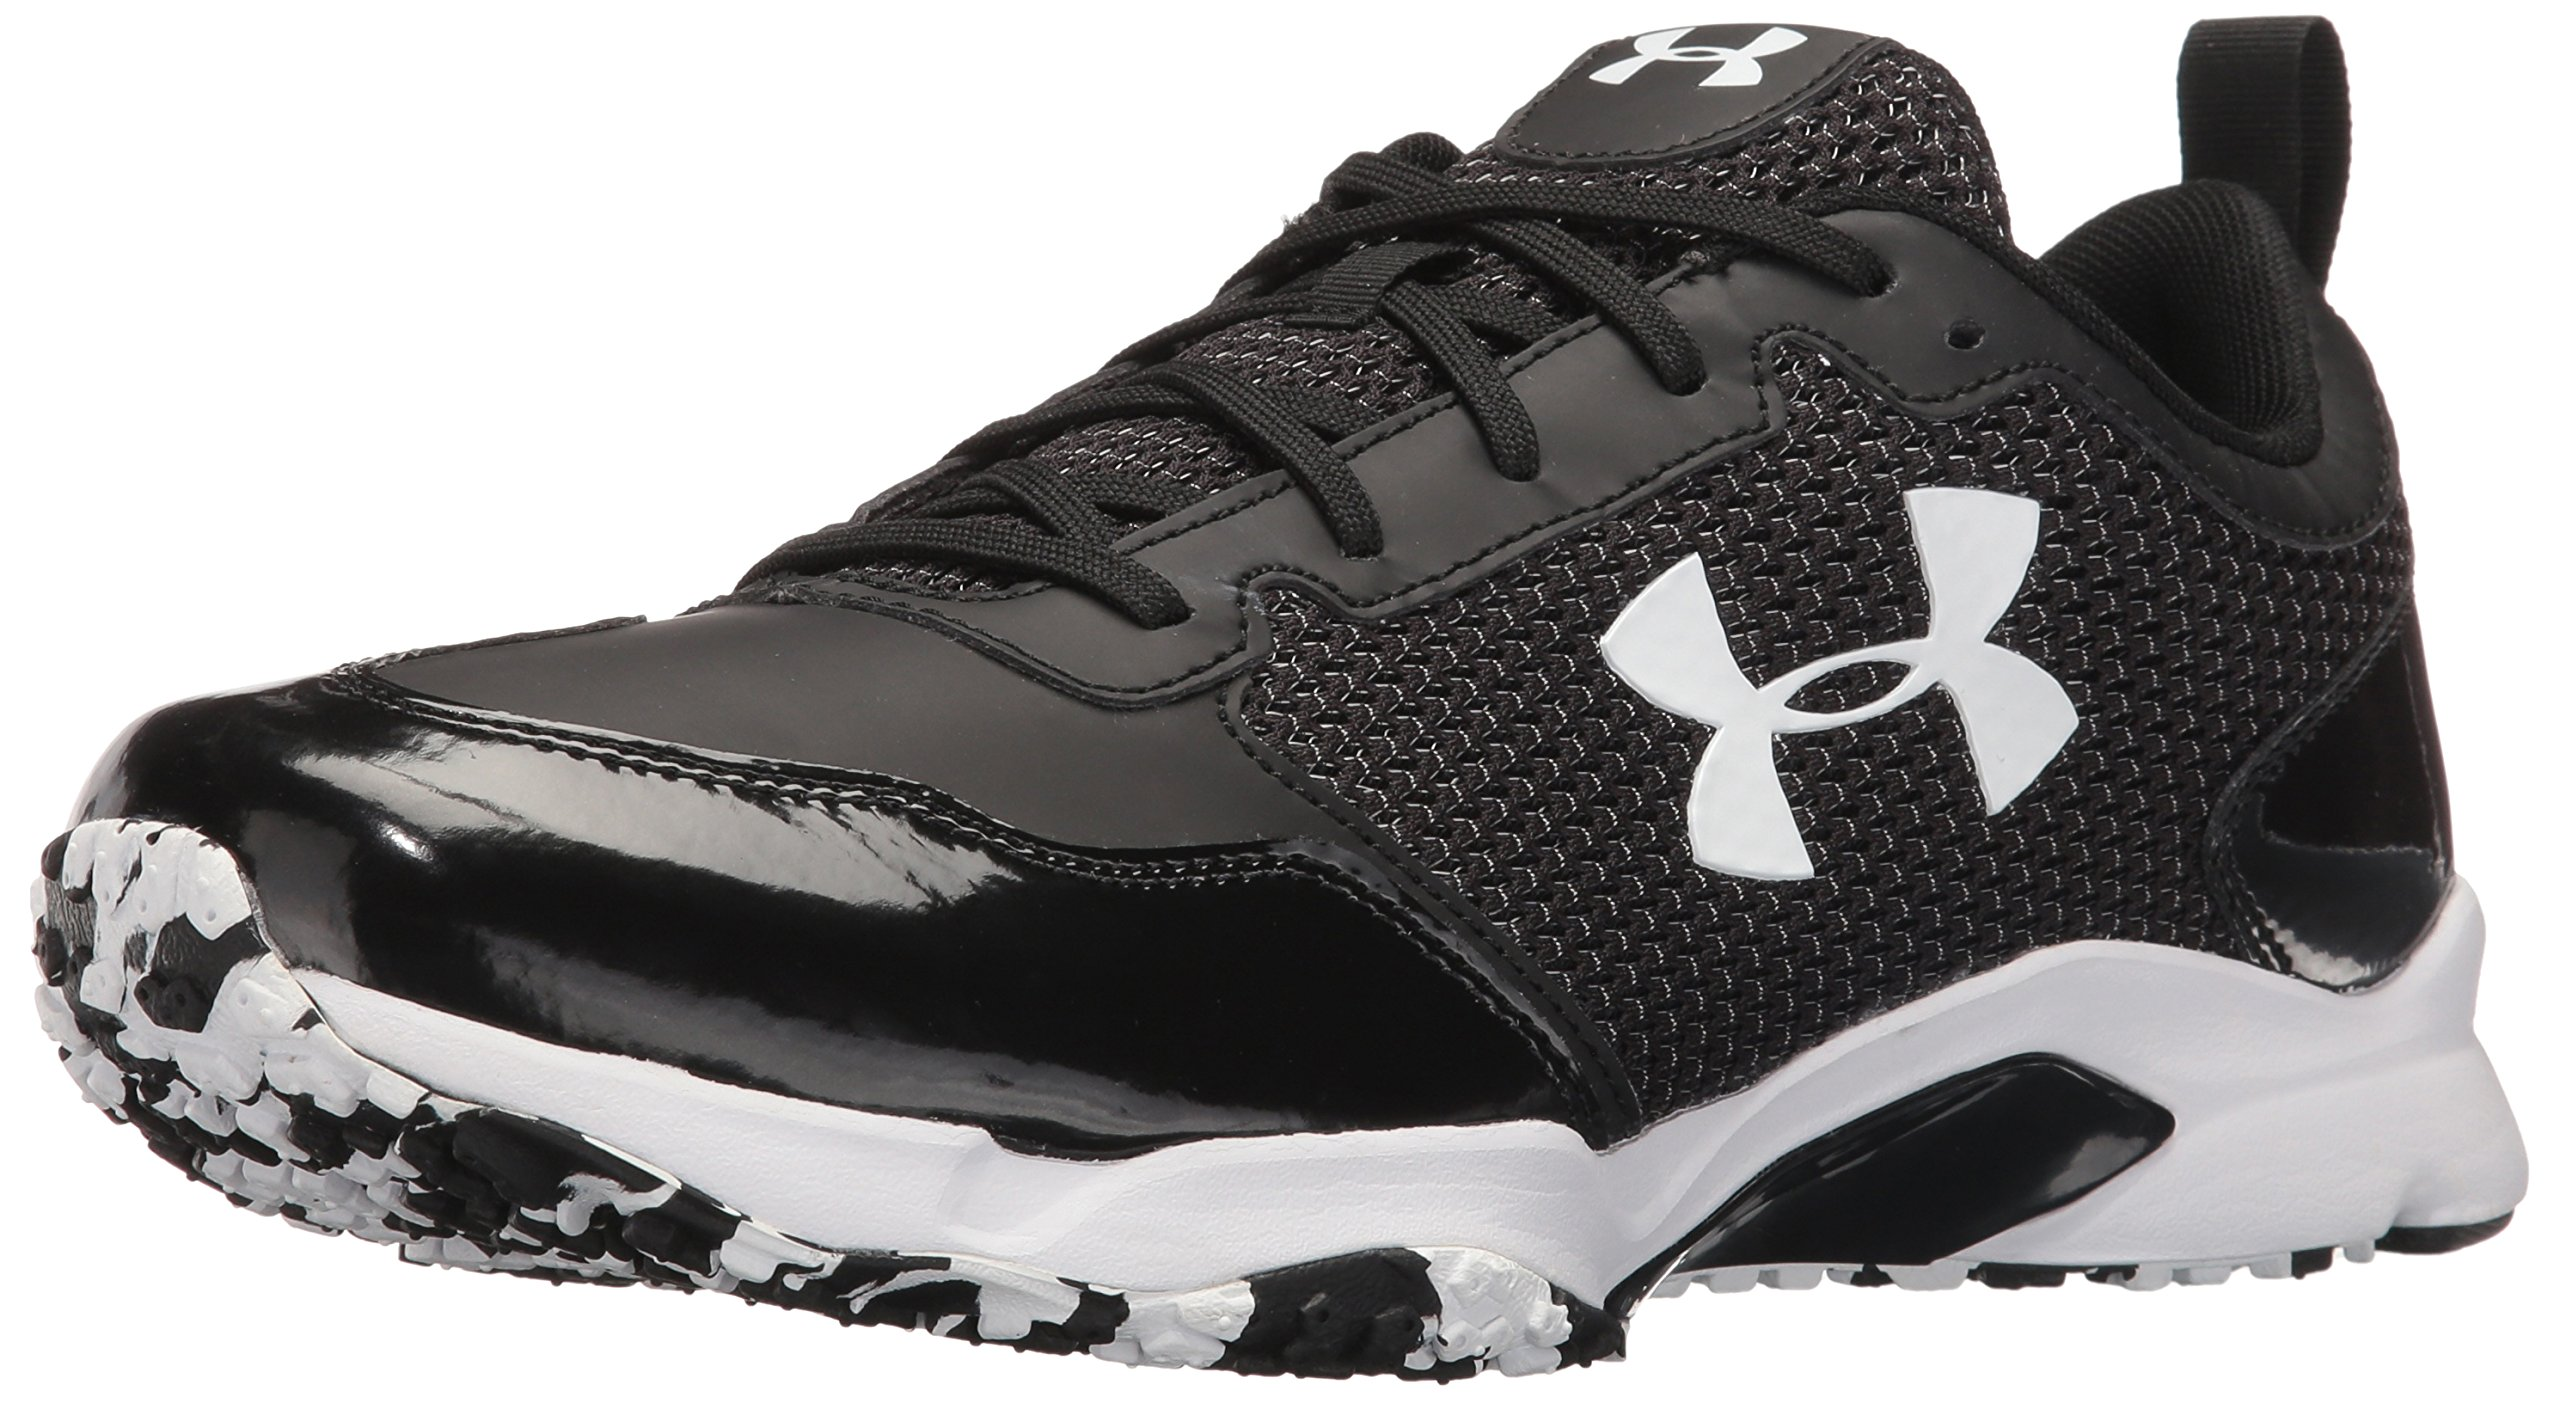 Under Armour Men's Ultimate Turf Trainer Baseball Shoe, Black (001)/Black, 10